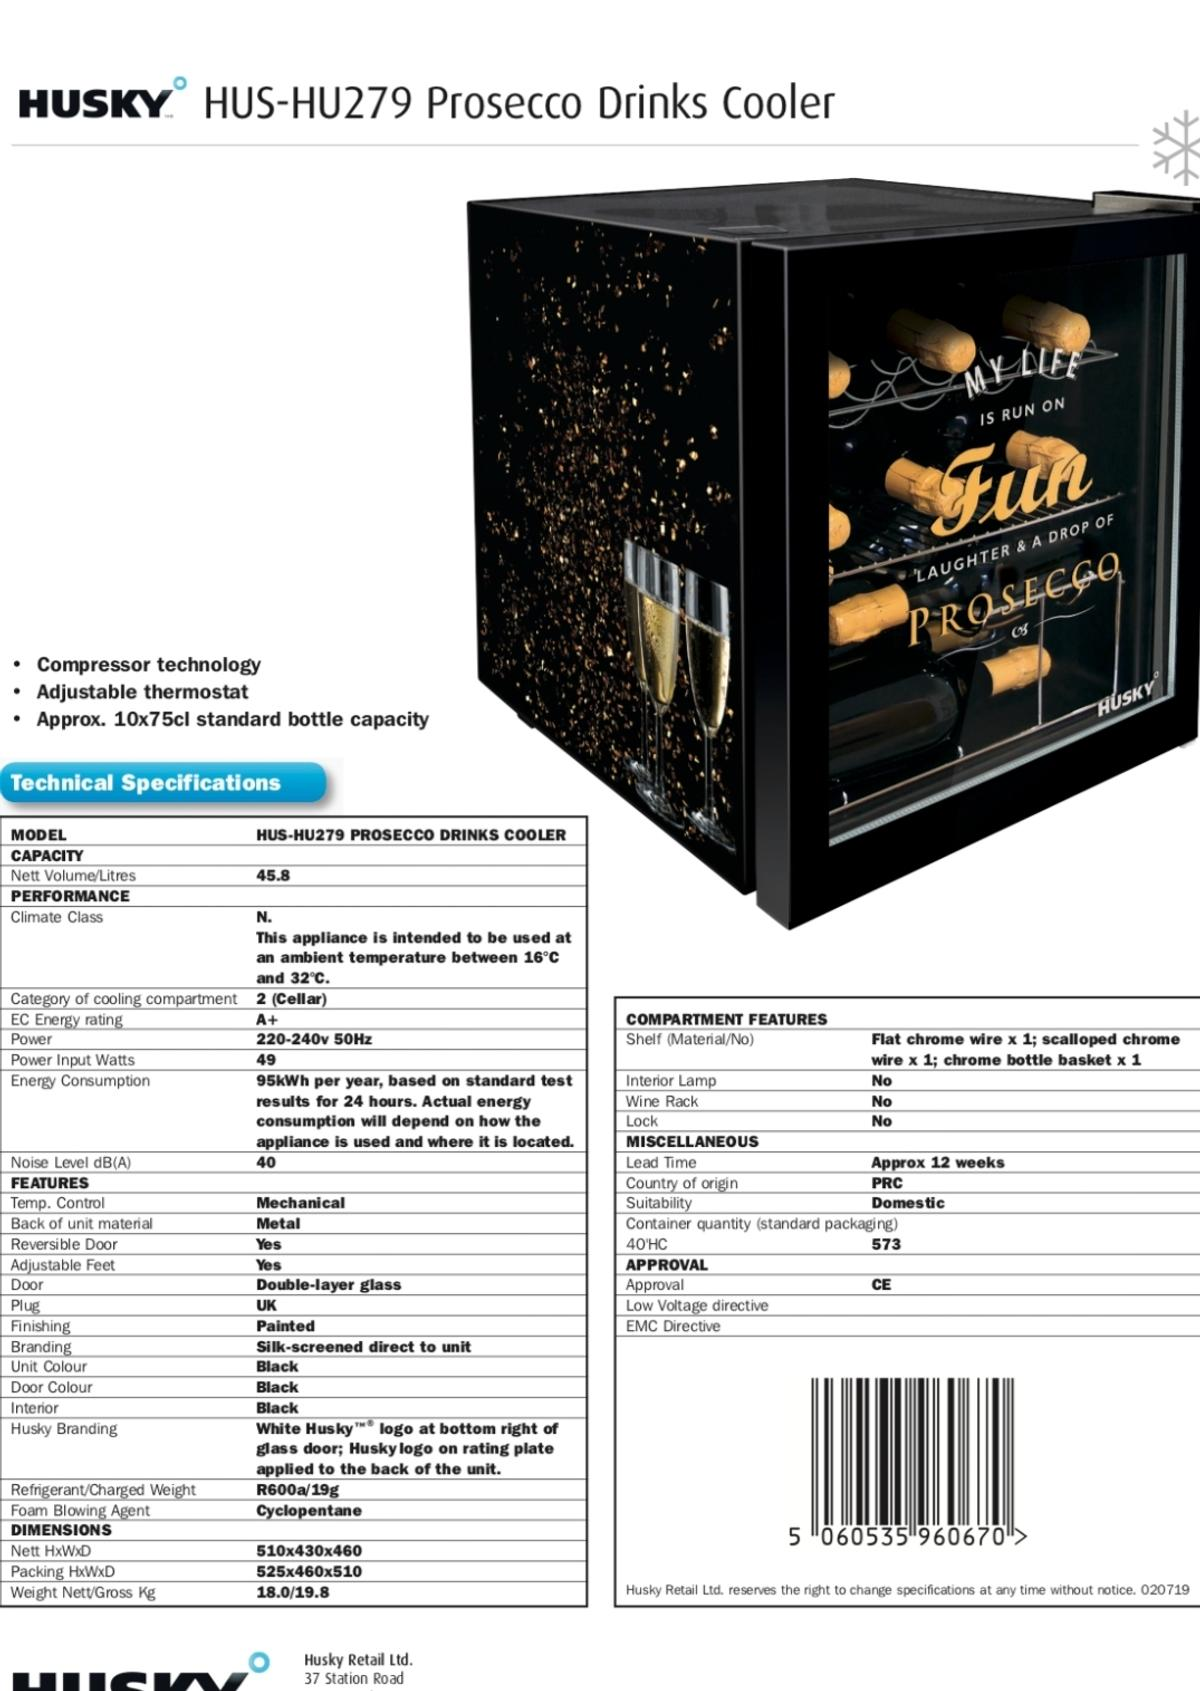 HUS-HU279 Husky Prosecco branded Drinks Cooler.  Big enough to accommodate up to 10 x 75cl bottles for a party, yet compact enough that it will sit on your kitchen worktop. Included is mixed shelving for flexible storage options including one scalloped, one flat and one basket, making it suitable for all drink types.  In perfect working order. A gift we don't make use of.